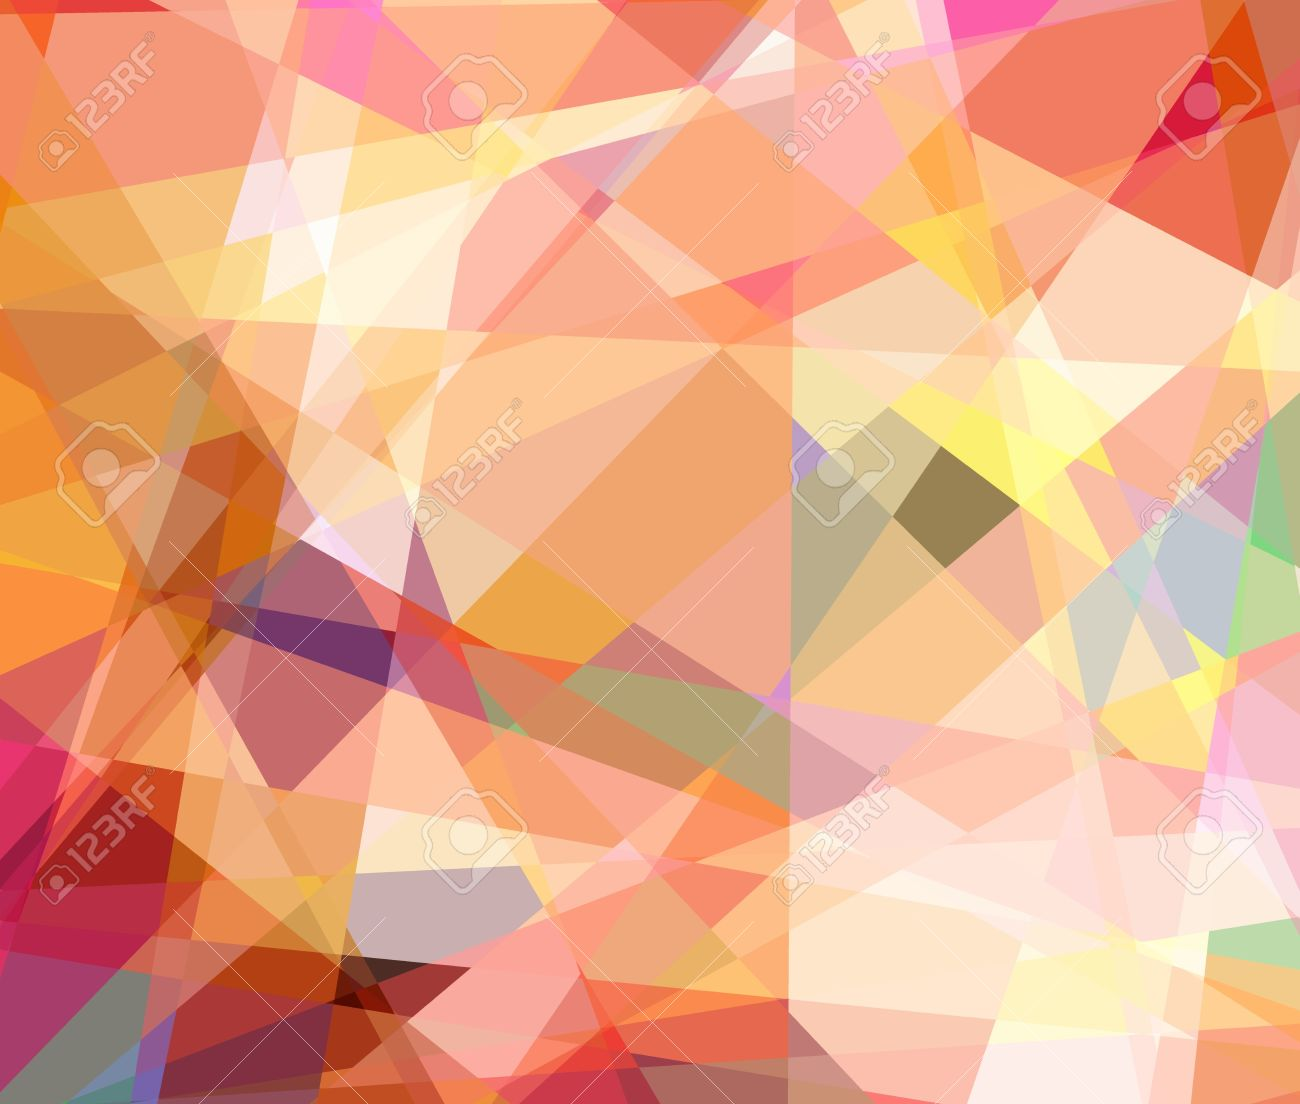 Retro abstract cubism art graphic design background Stock Photo - 15851468